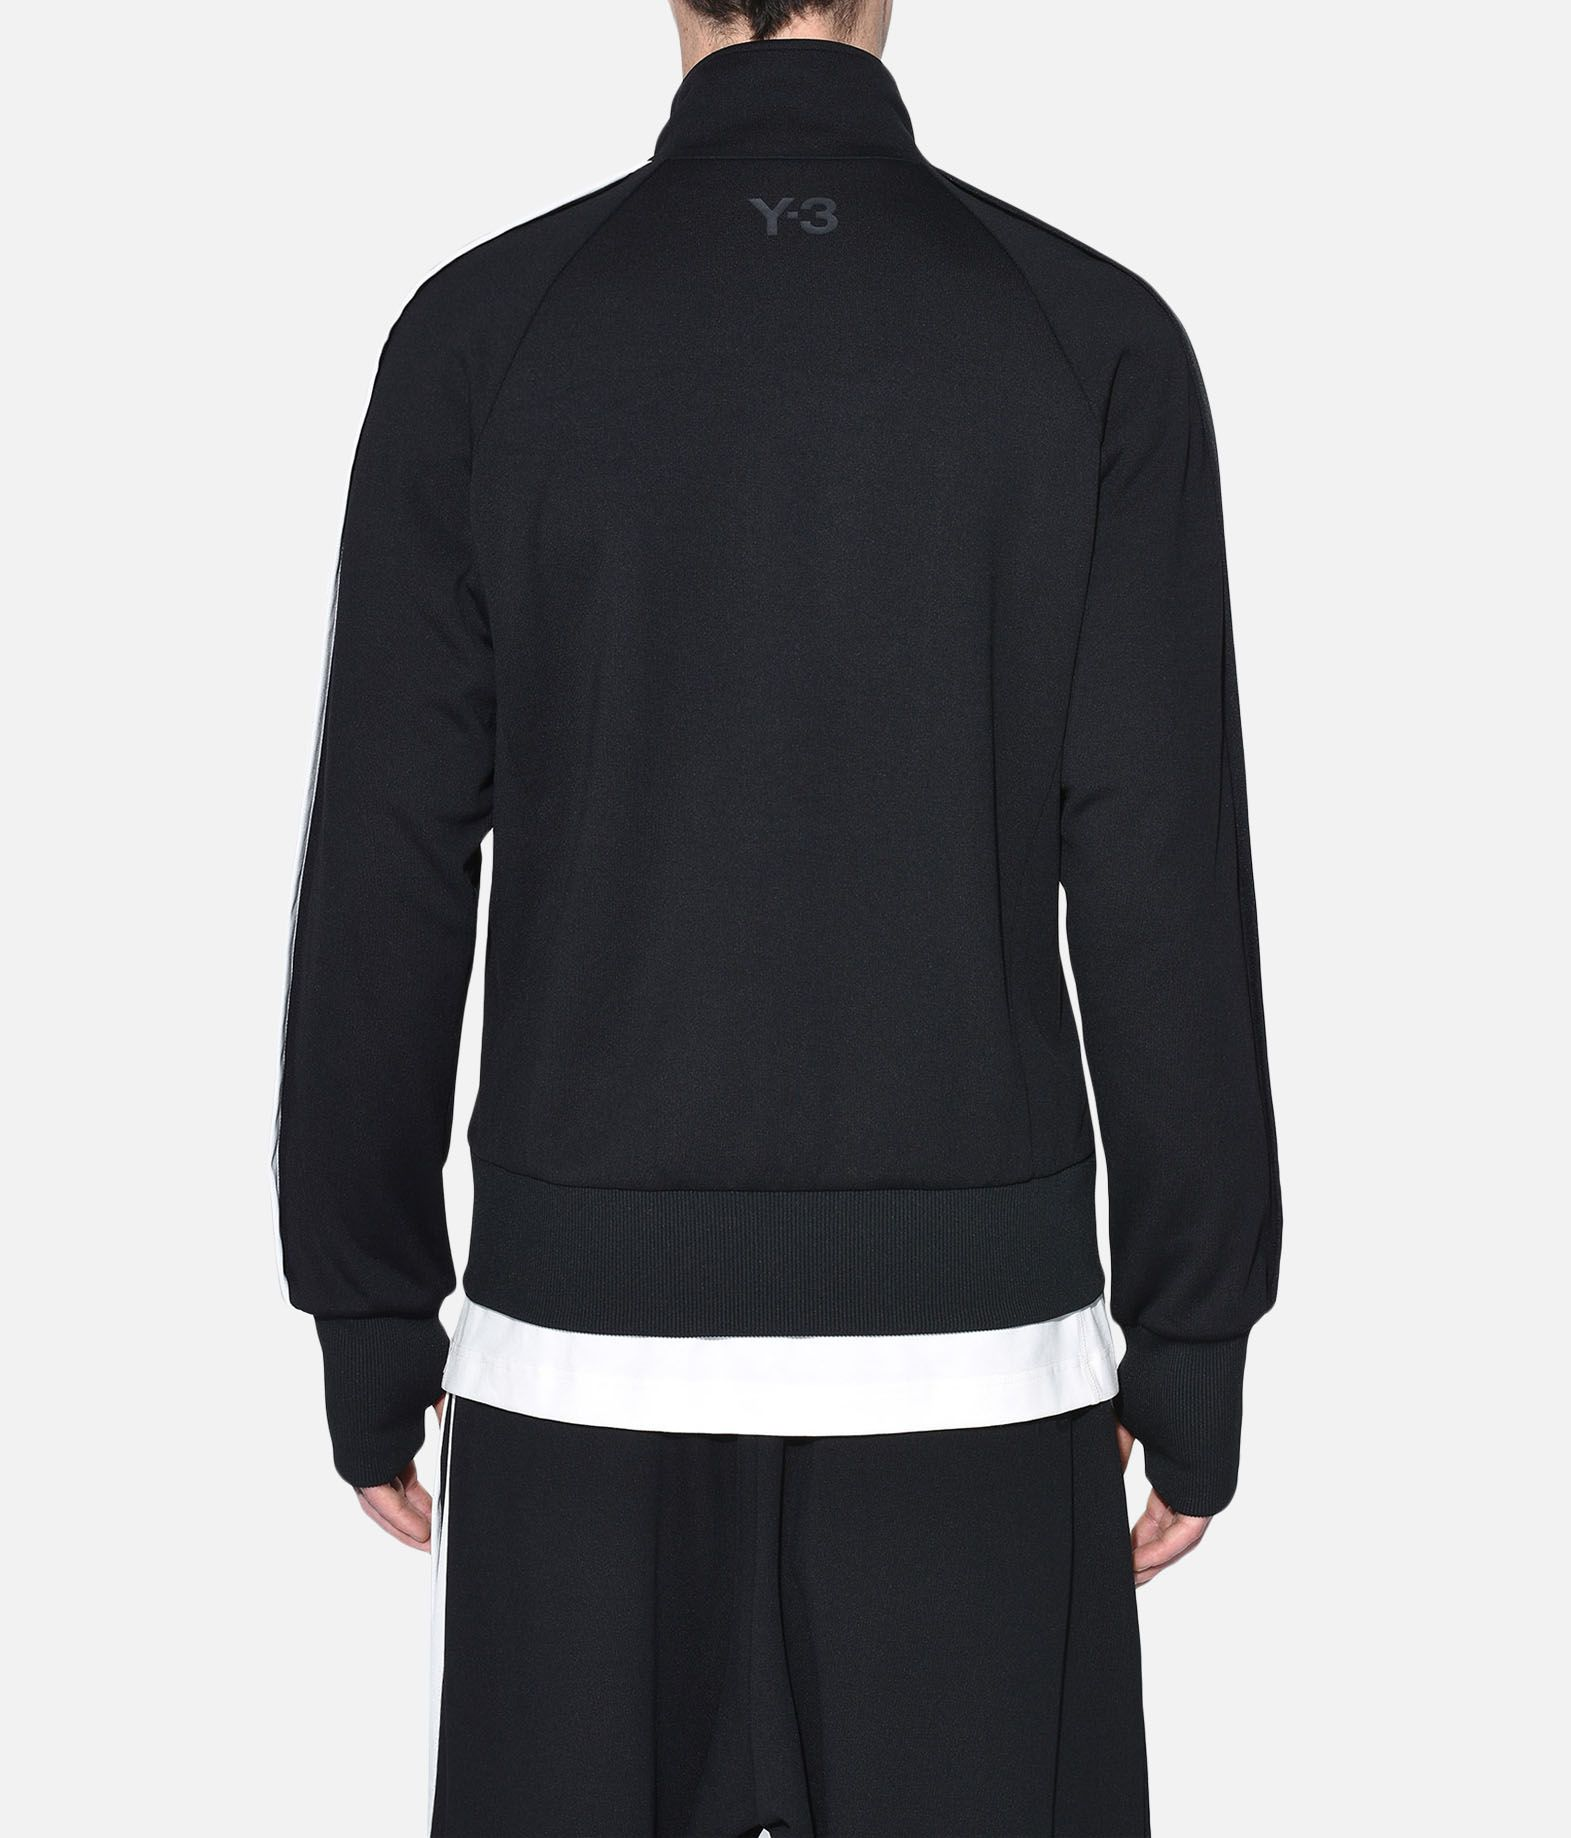 Y-3 Y-3 3-Stripes Selvedge Matte Track Jacket Track top Man d